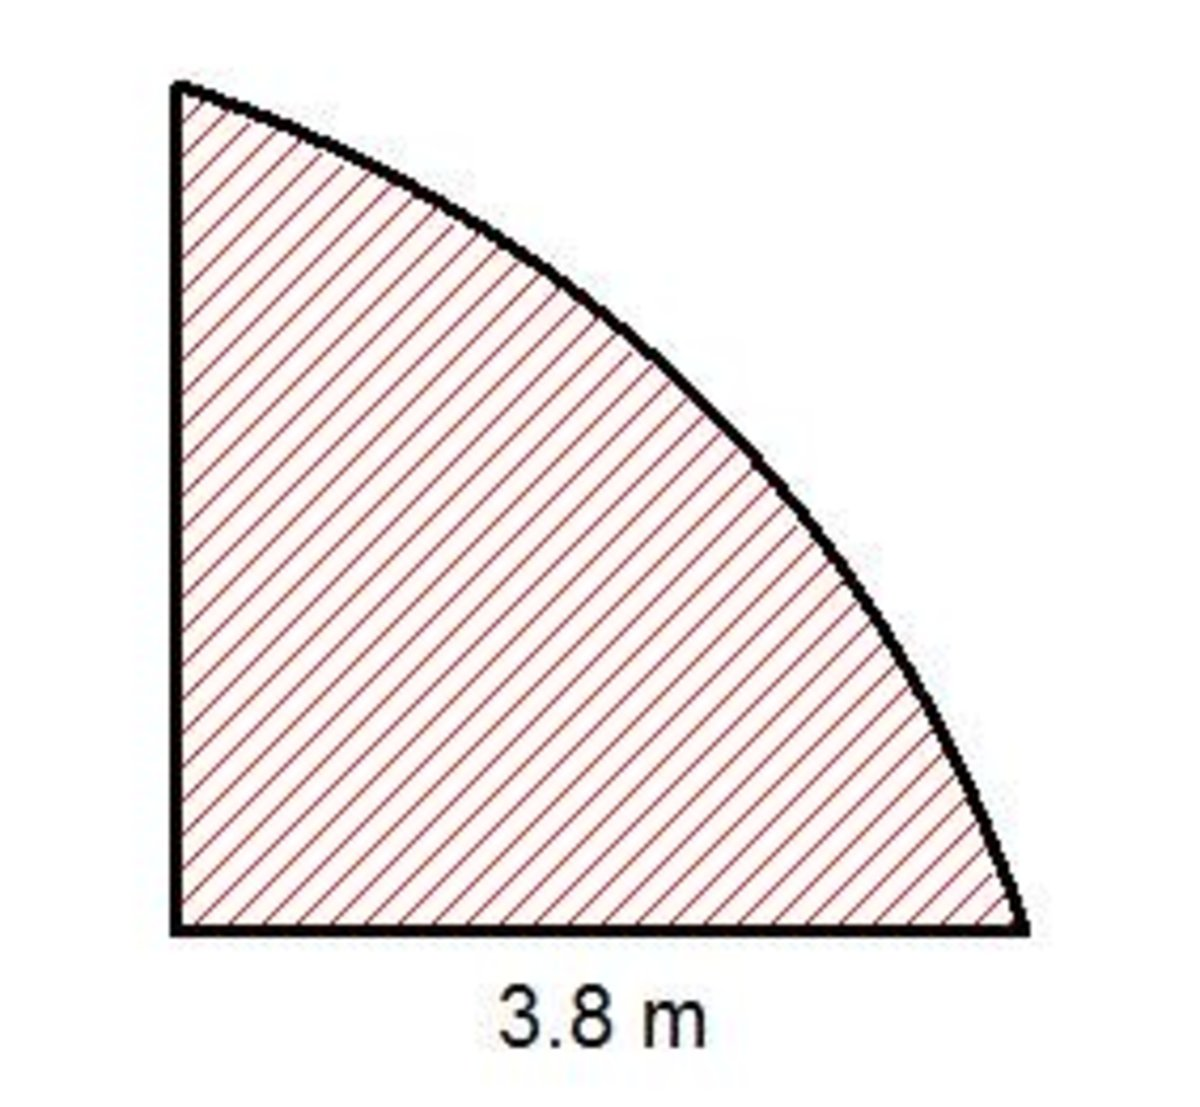 How to Find the Area of a Quadrant (a Quarter of a Circle ...